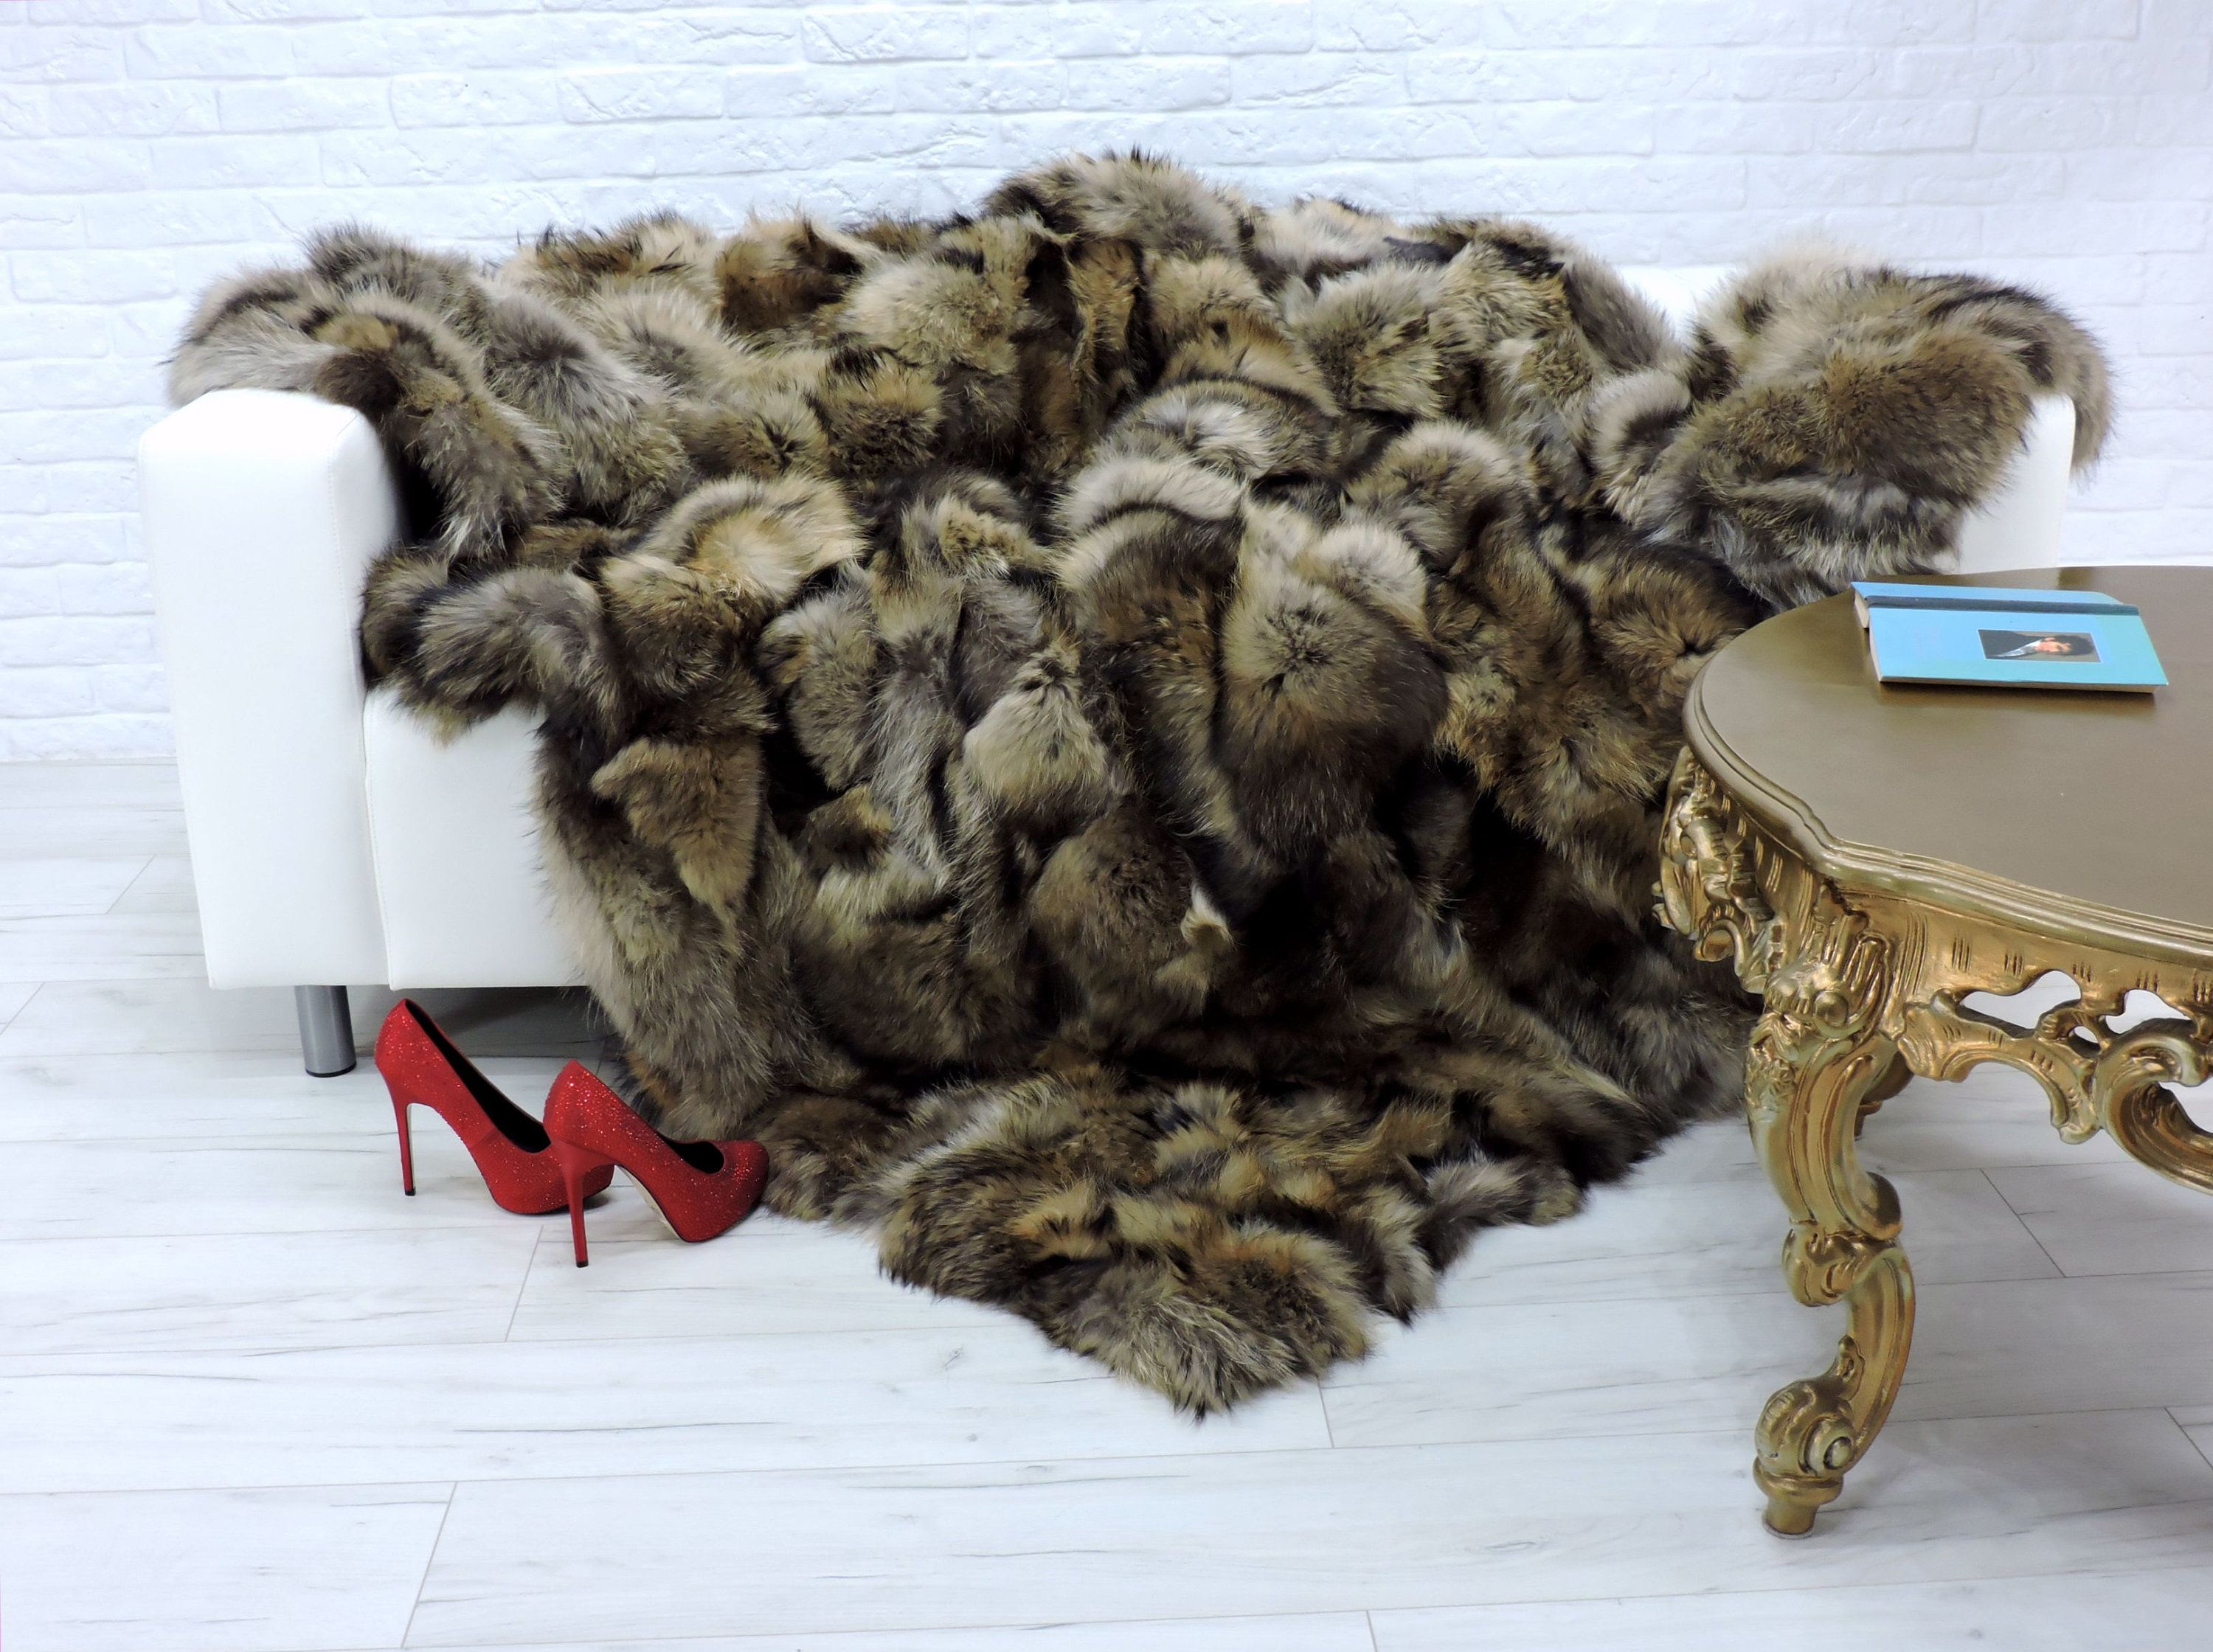 Luxury Real Red Fox Fur Blanket Fur Throw Sofa Throw Sofa Cover Genuine Leather Real Fur Throws King Size Throws Home Dec In 2020 Fur Blanket Fox Fur Fur Throw Blanket